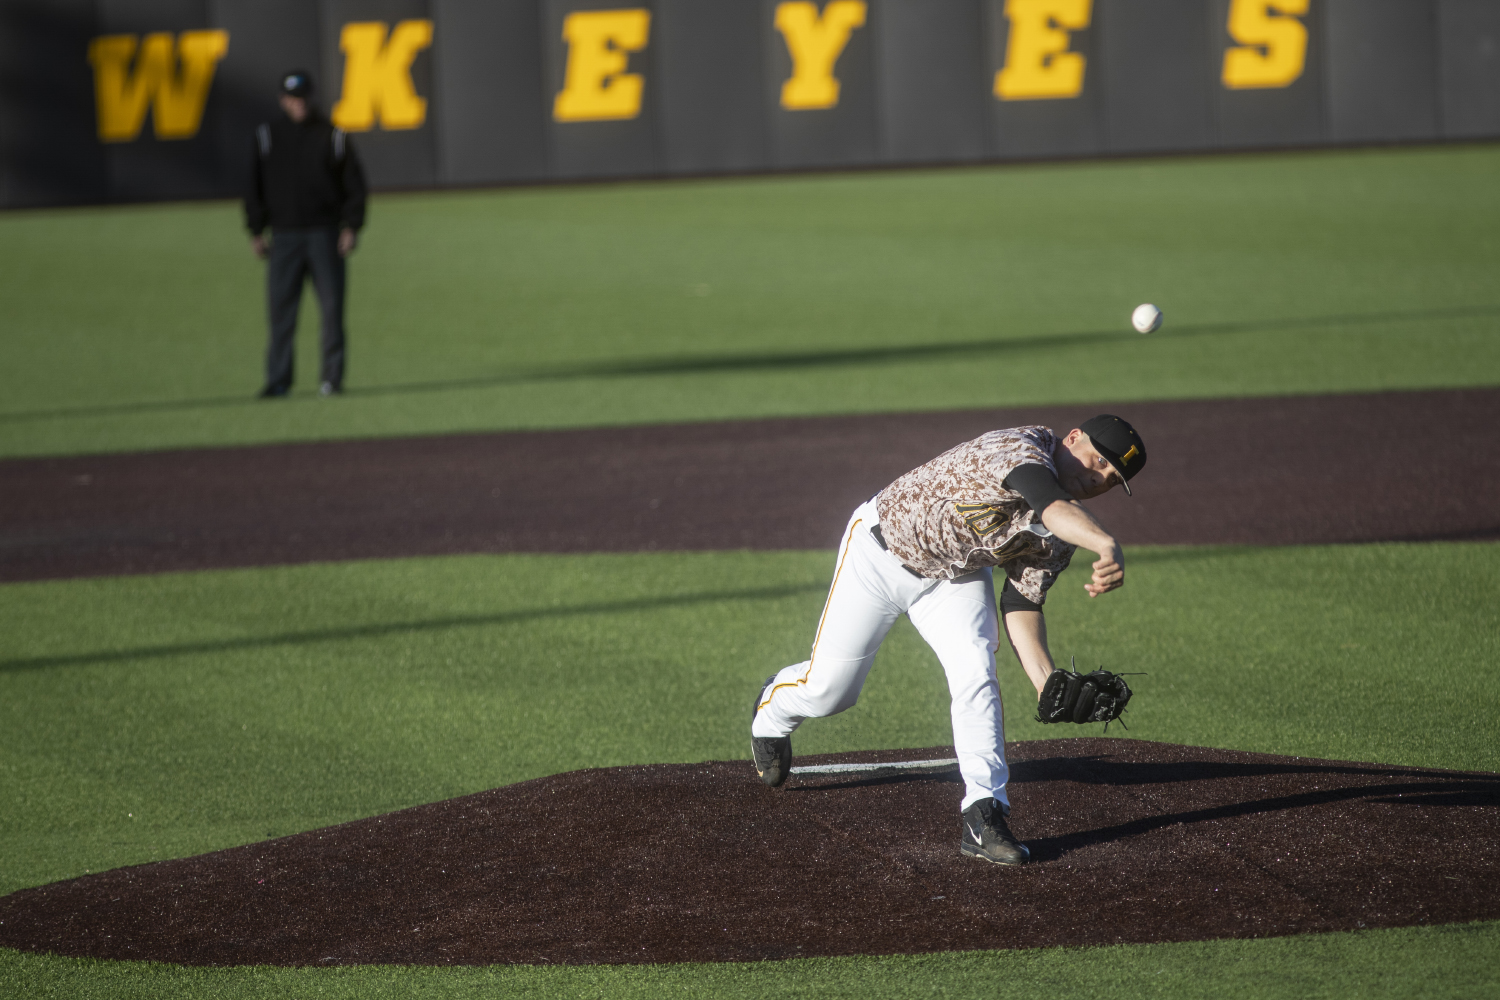 Iowa's Cole McDonald pitches during a baseball game against Nebraska in Duane Banks Field on April 19, 2019. The Hawkeyes defeated the Cornhuskers 3-2.